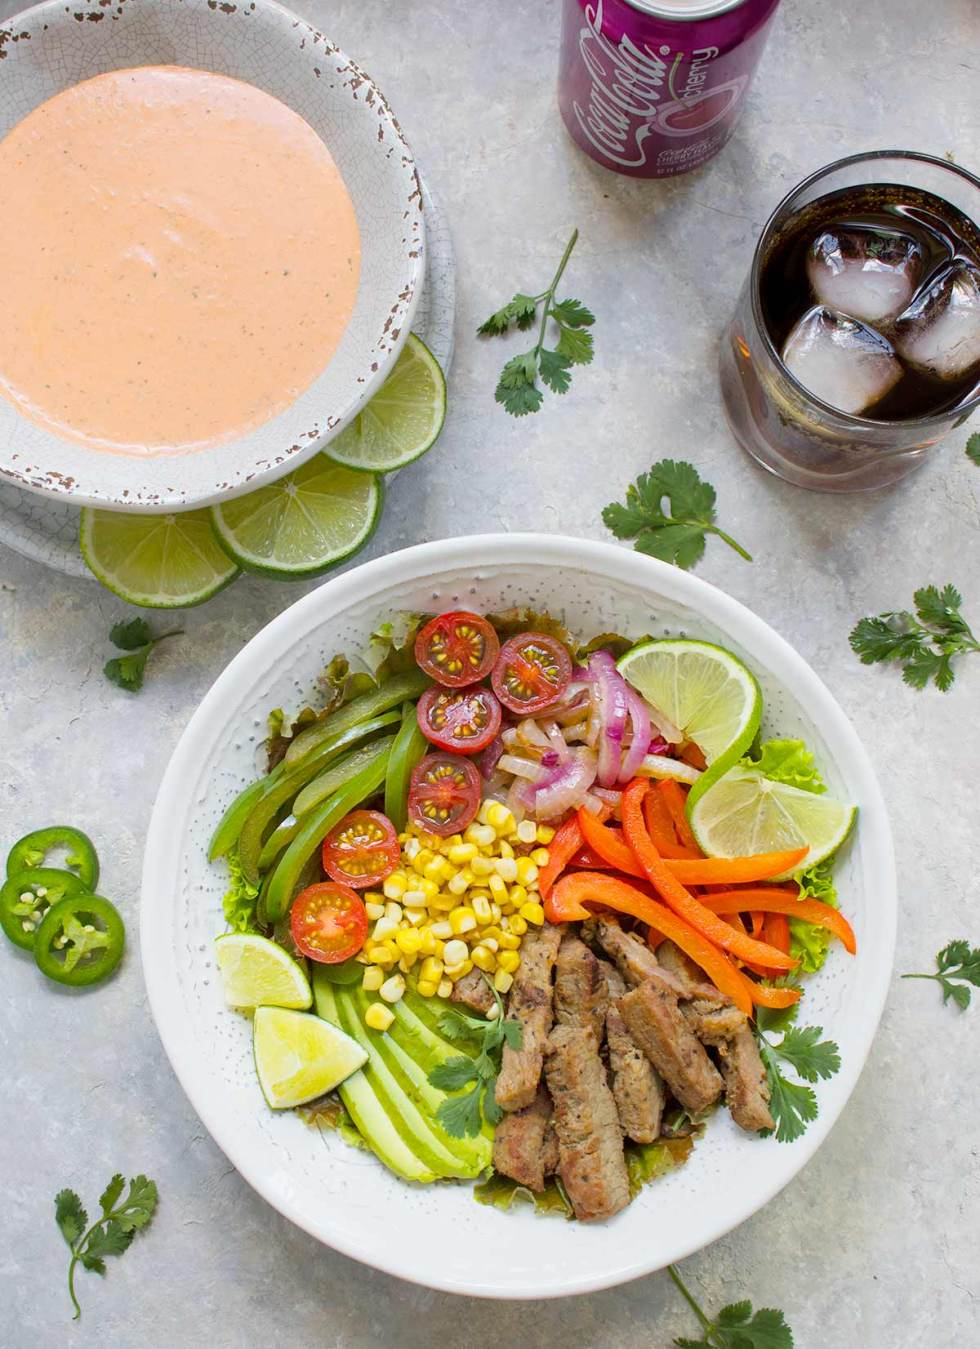 Beef Fajita Salad with Creamy Salsa Dressing, served in a bowl, with a glass of Cherry Coke. Recipe at SoupAddict.com